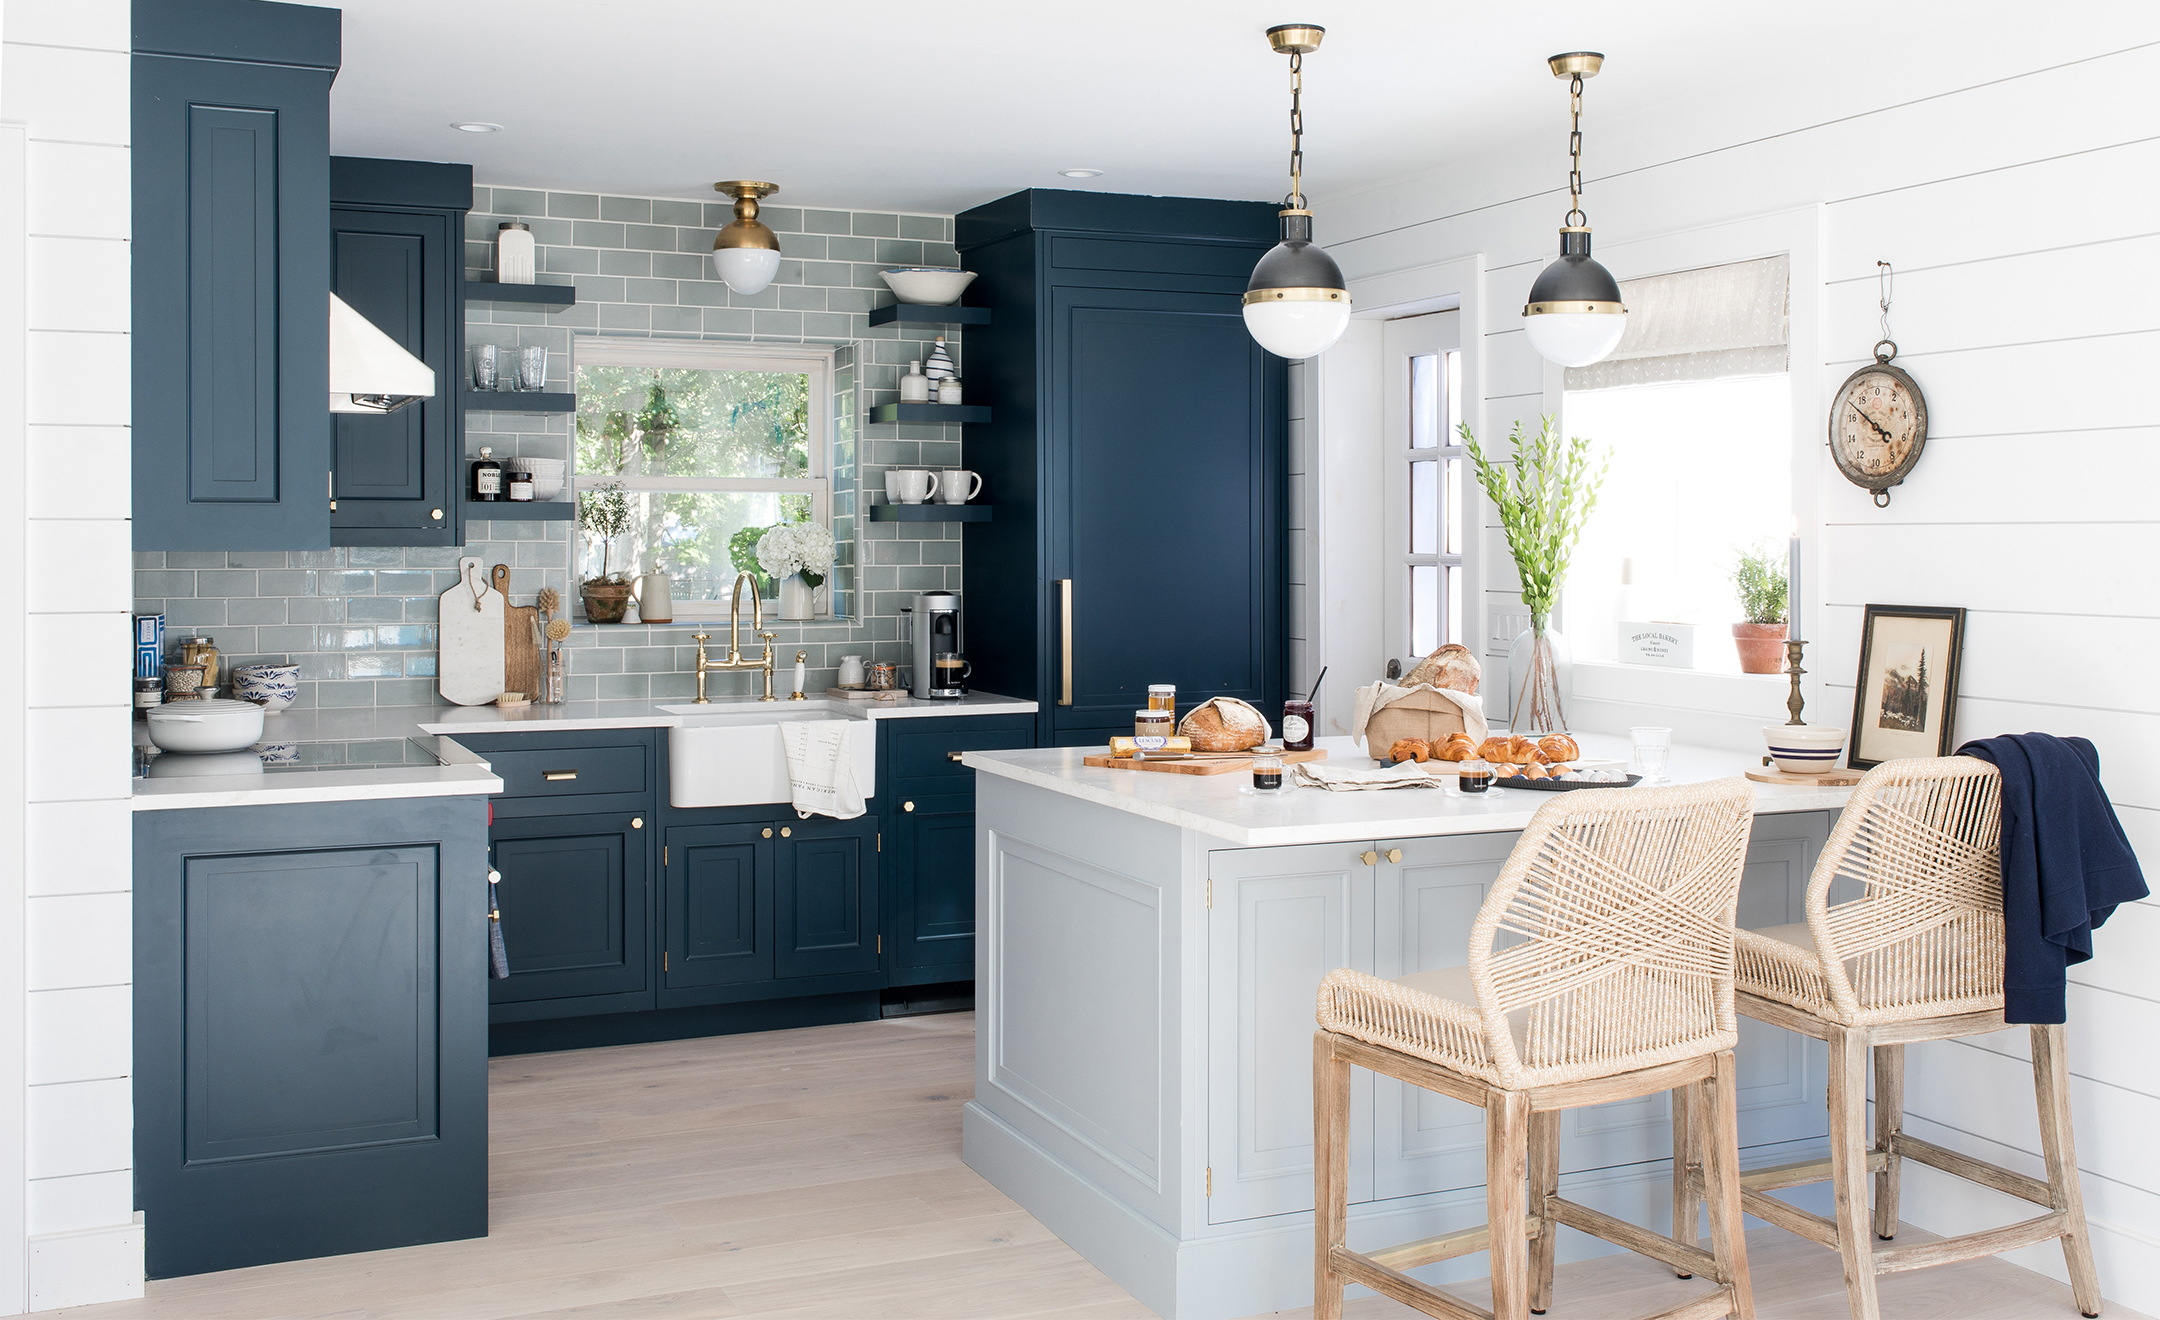 design house kitchens.  Our Beach House Kitchen The Reveal Bright Bazaar By Will Taylor